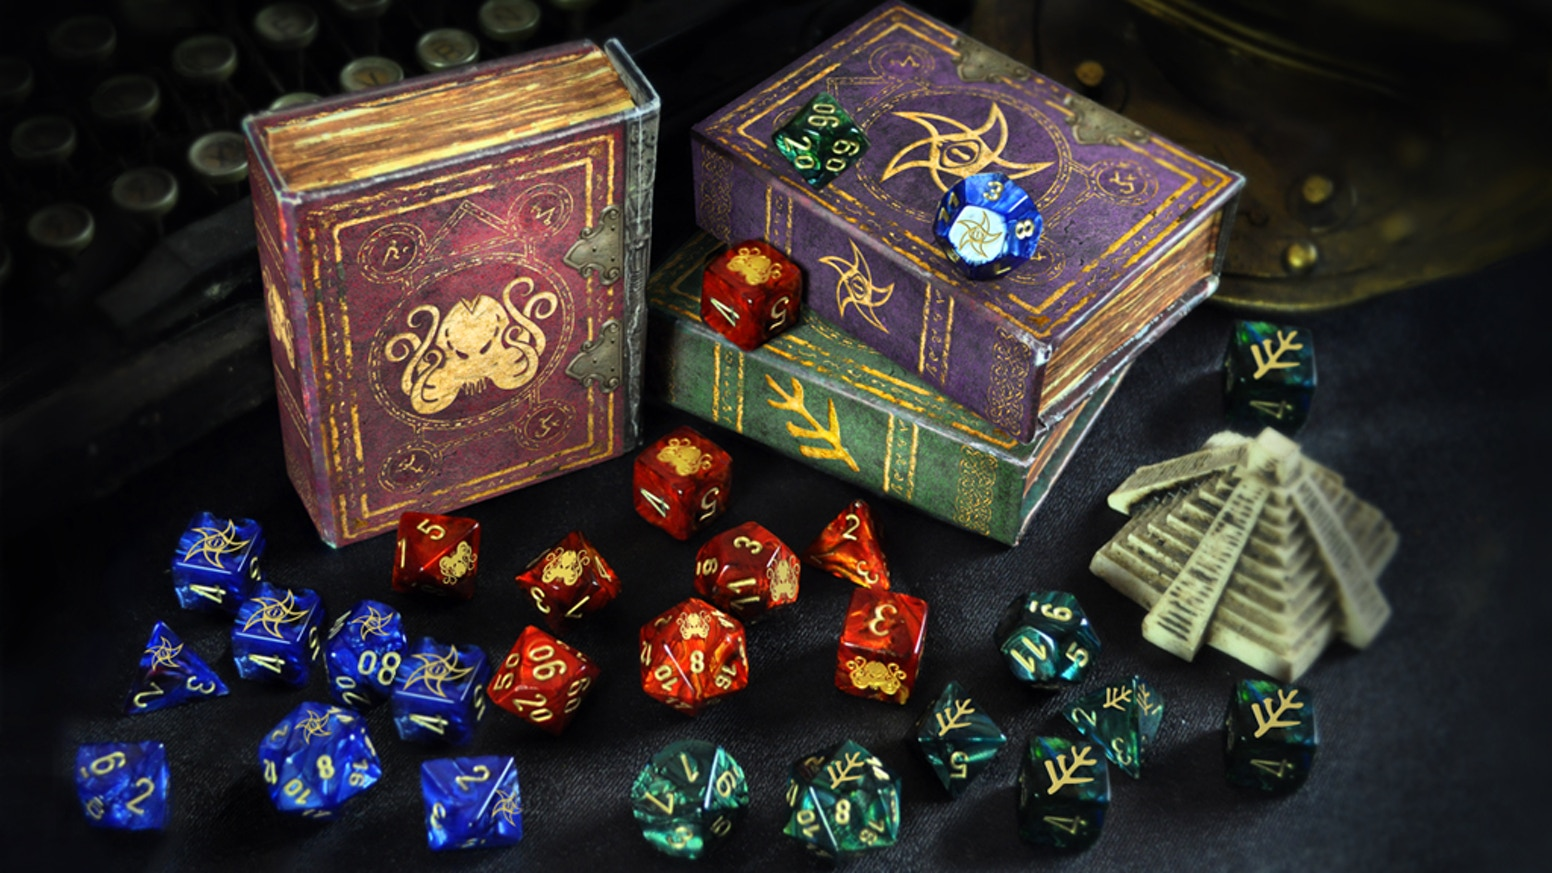 Lovecraftian designs consist of: The Great Cthulhu, Star Elder Sign and Lovecraft Elder Sign. Also includes magnetized spell book boxes